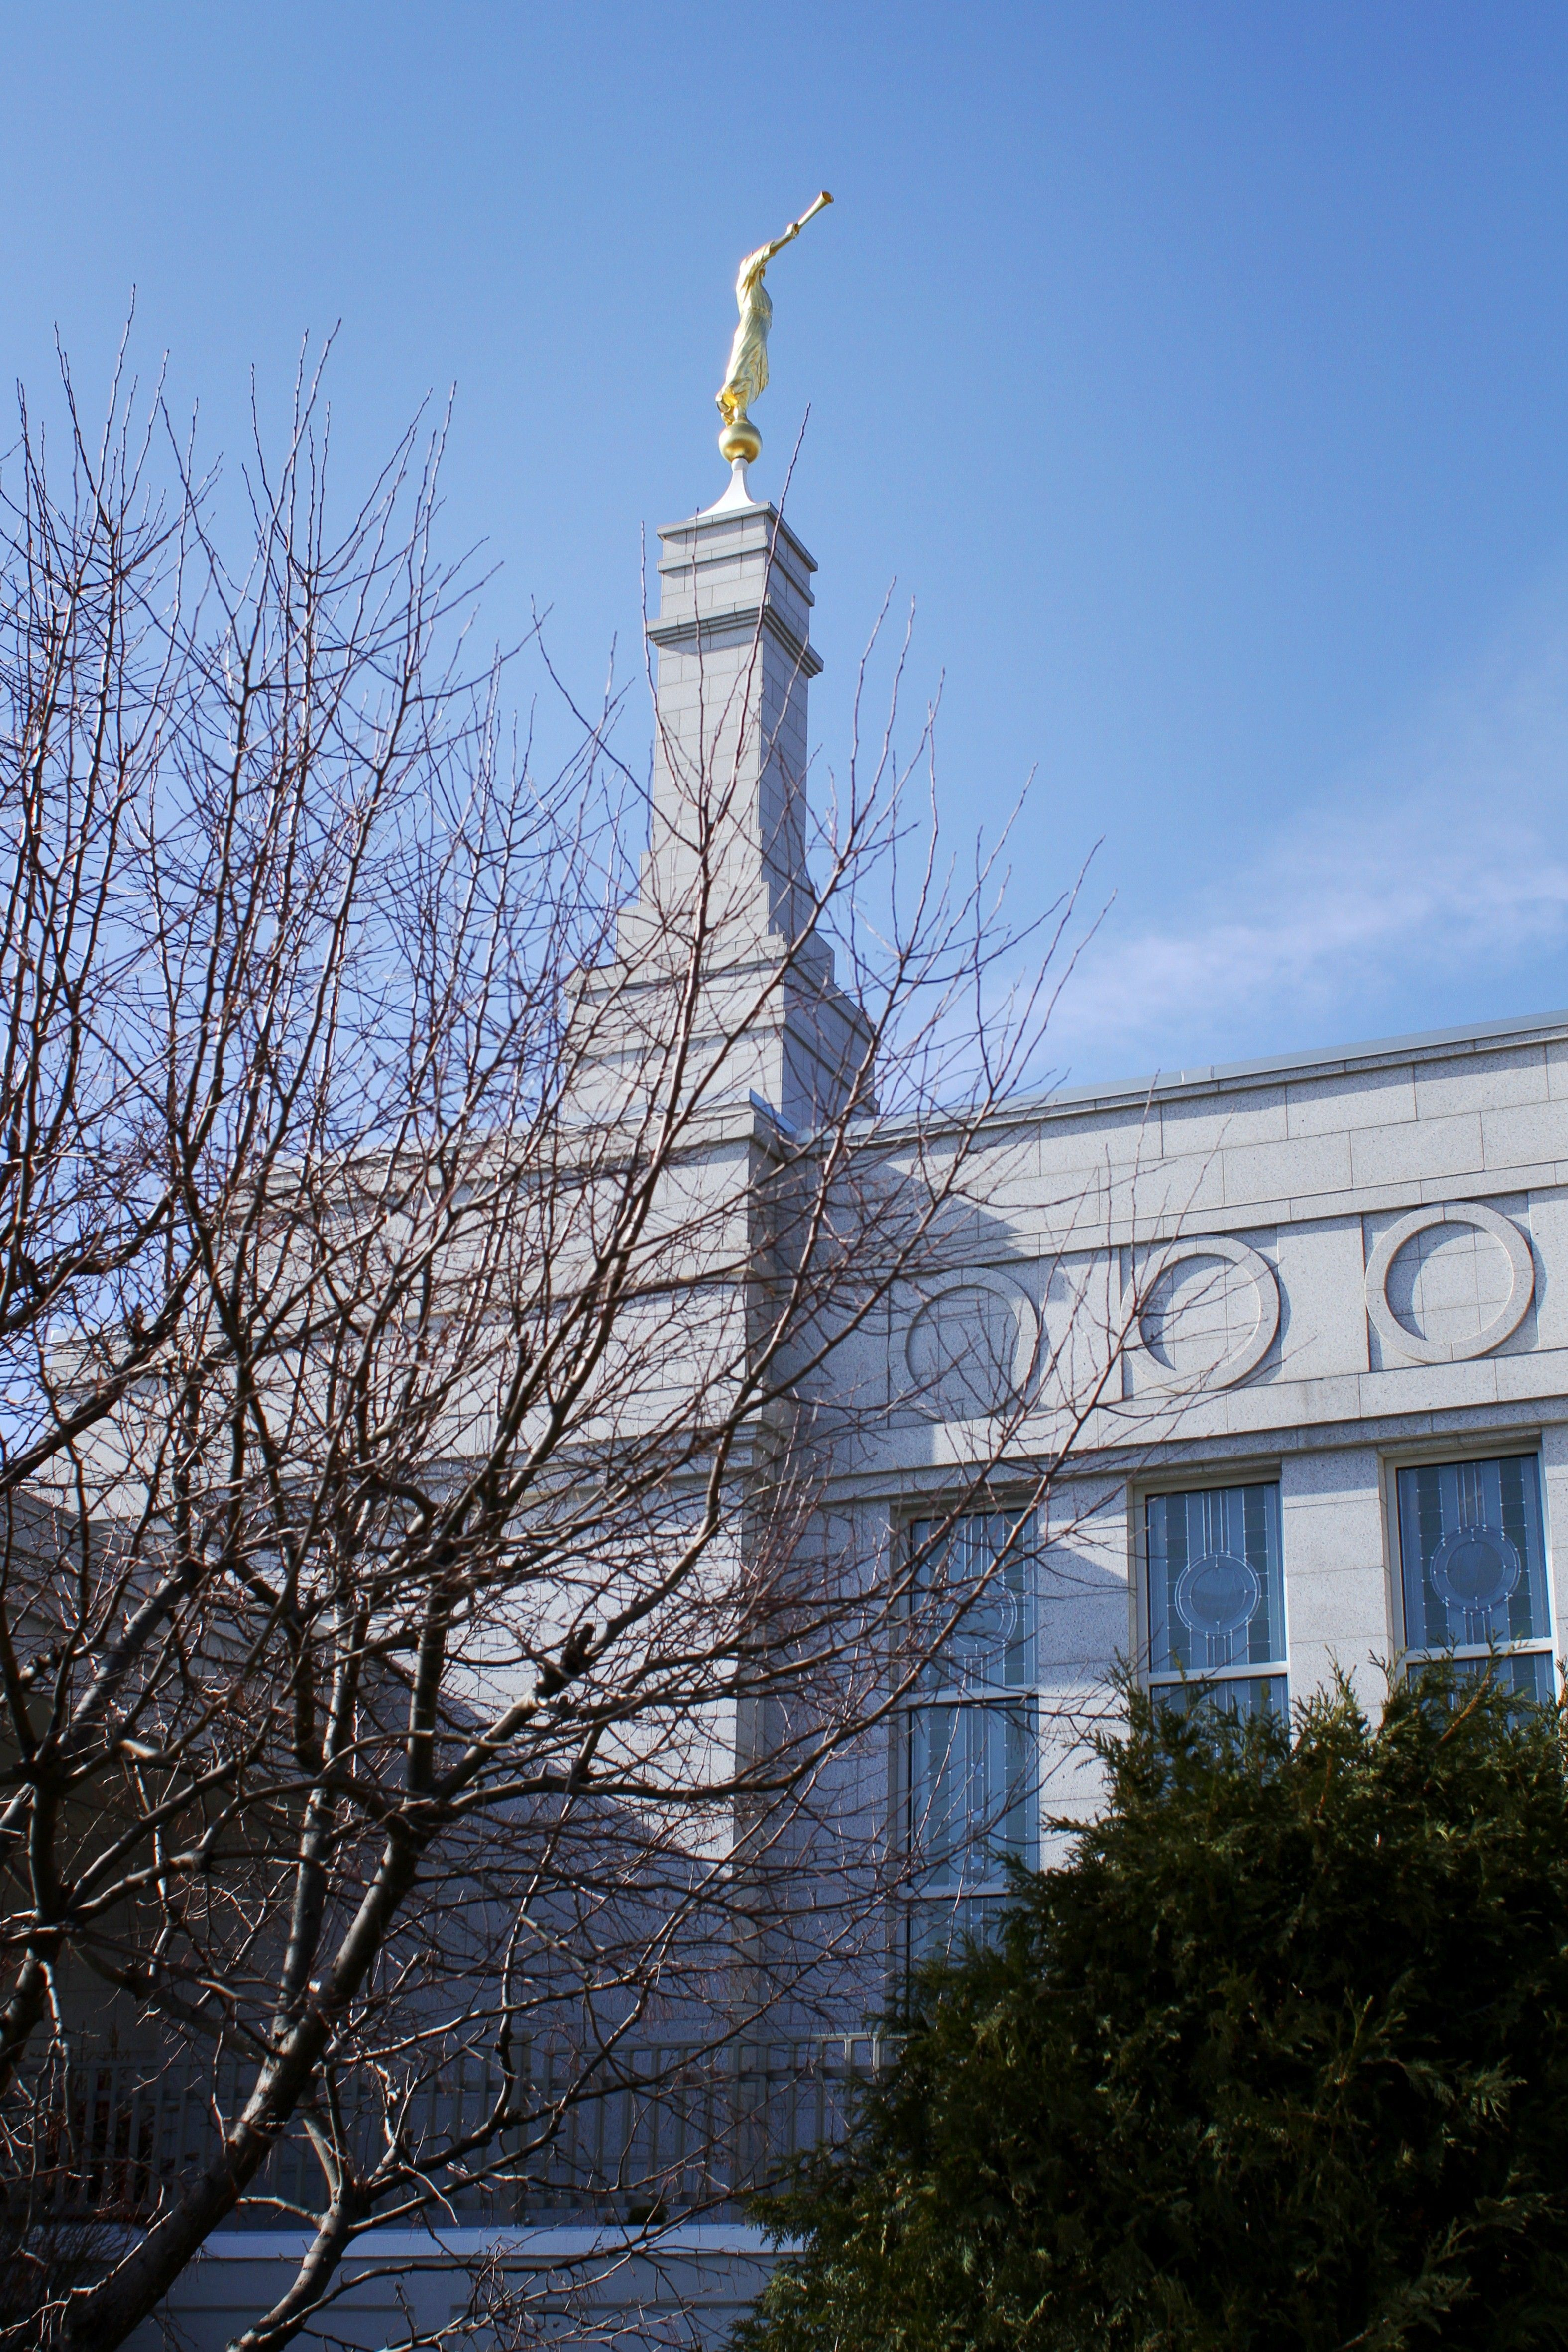 A side view of the St. Paul Minnesota Temple, including the spire, windows, and scenery.